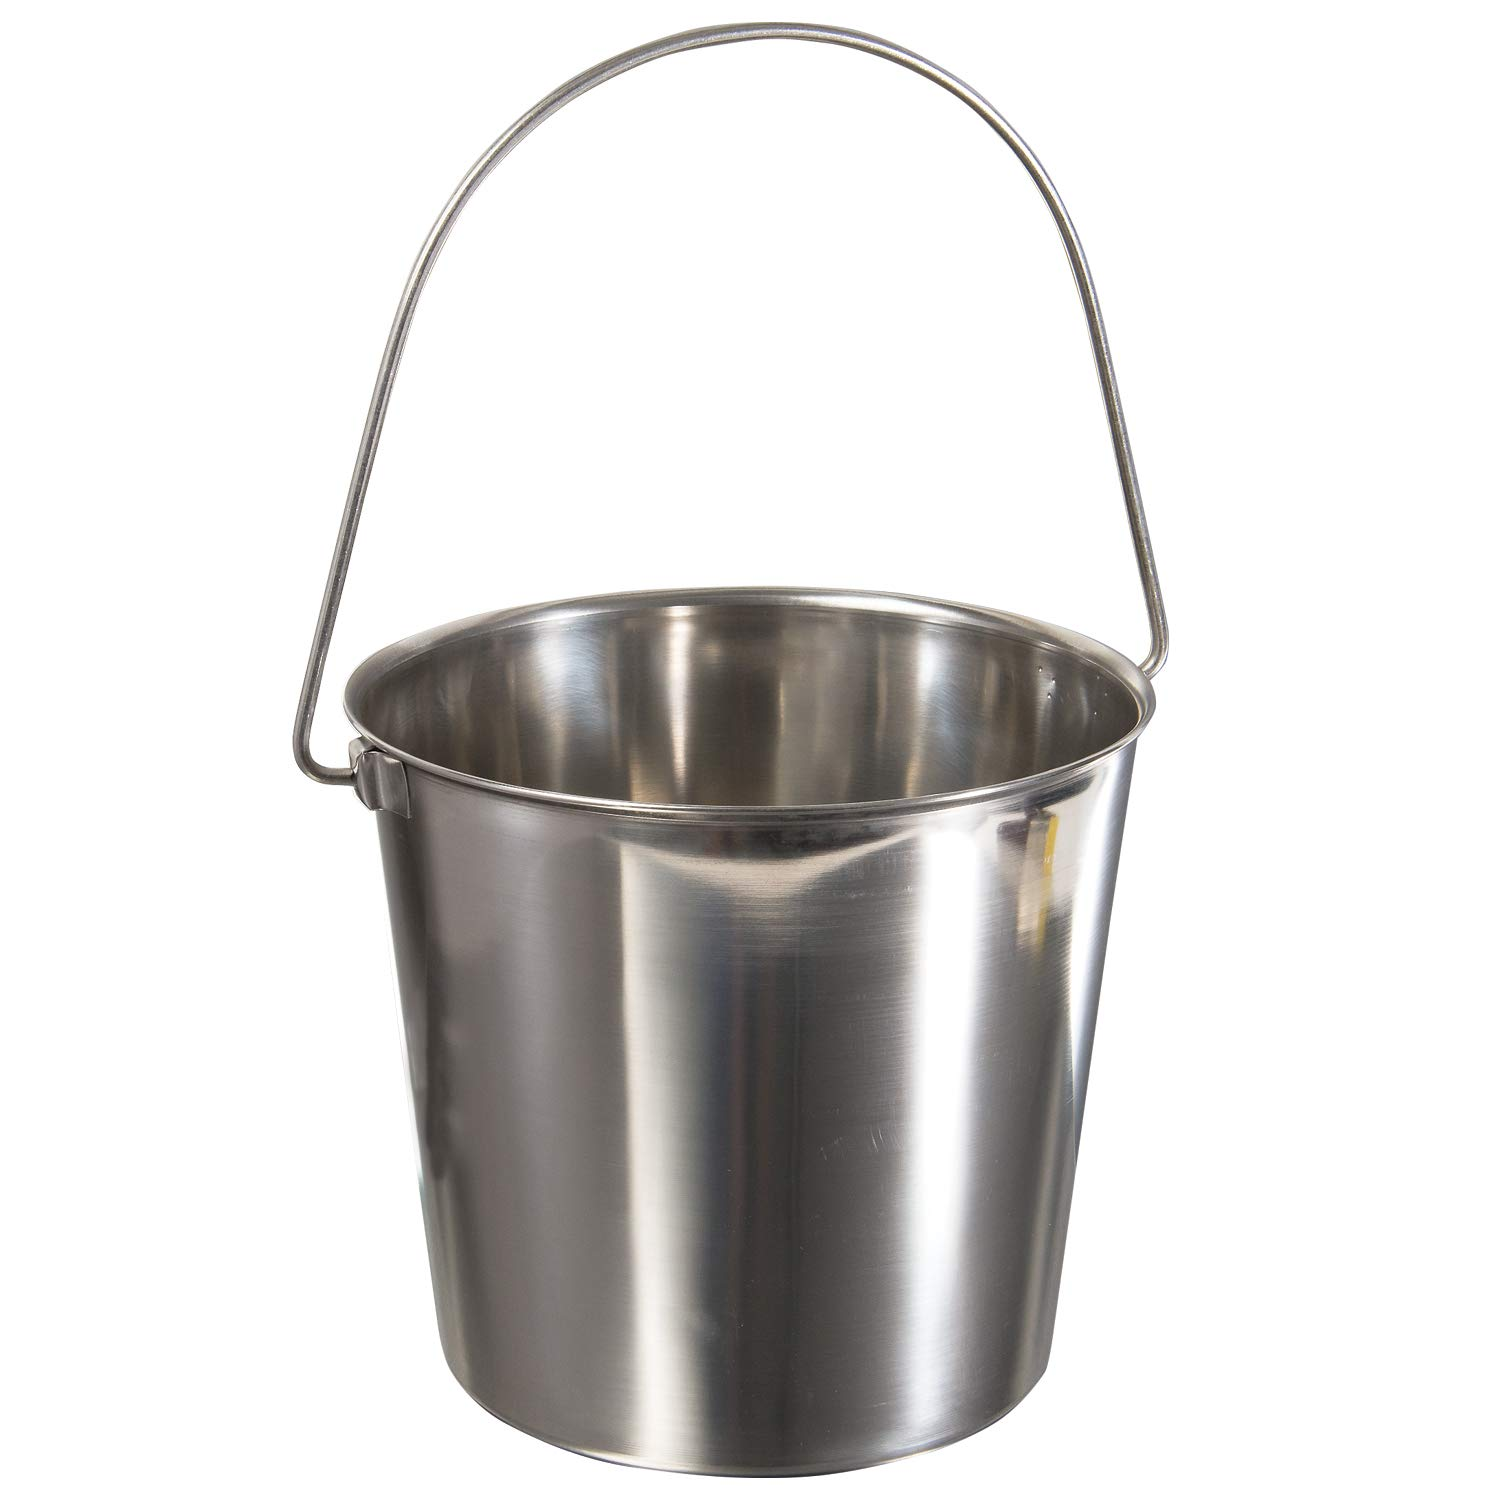 Update International UP-13 13 Quart Utility Pail, 202 Stainless Steel by Update International